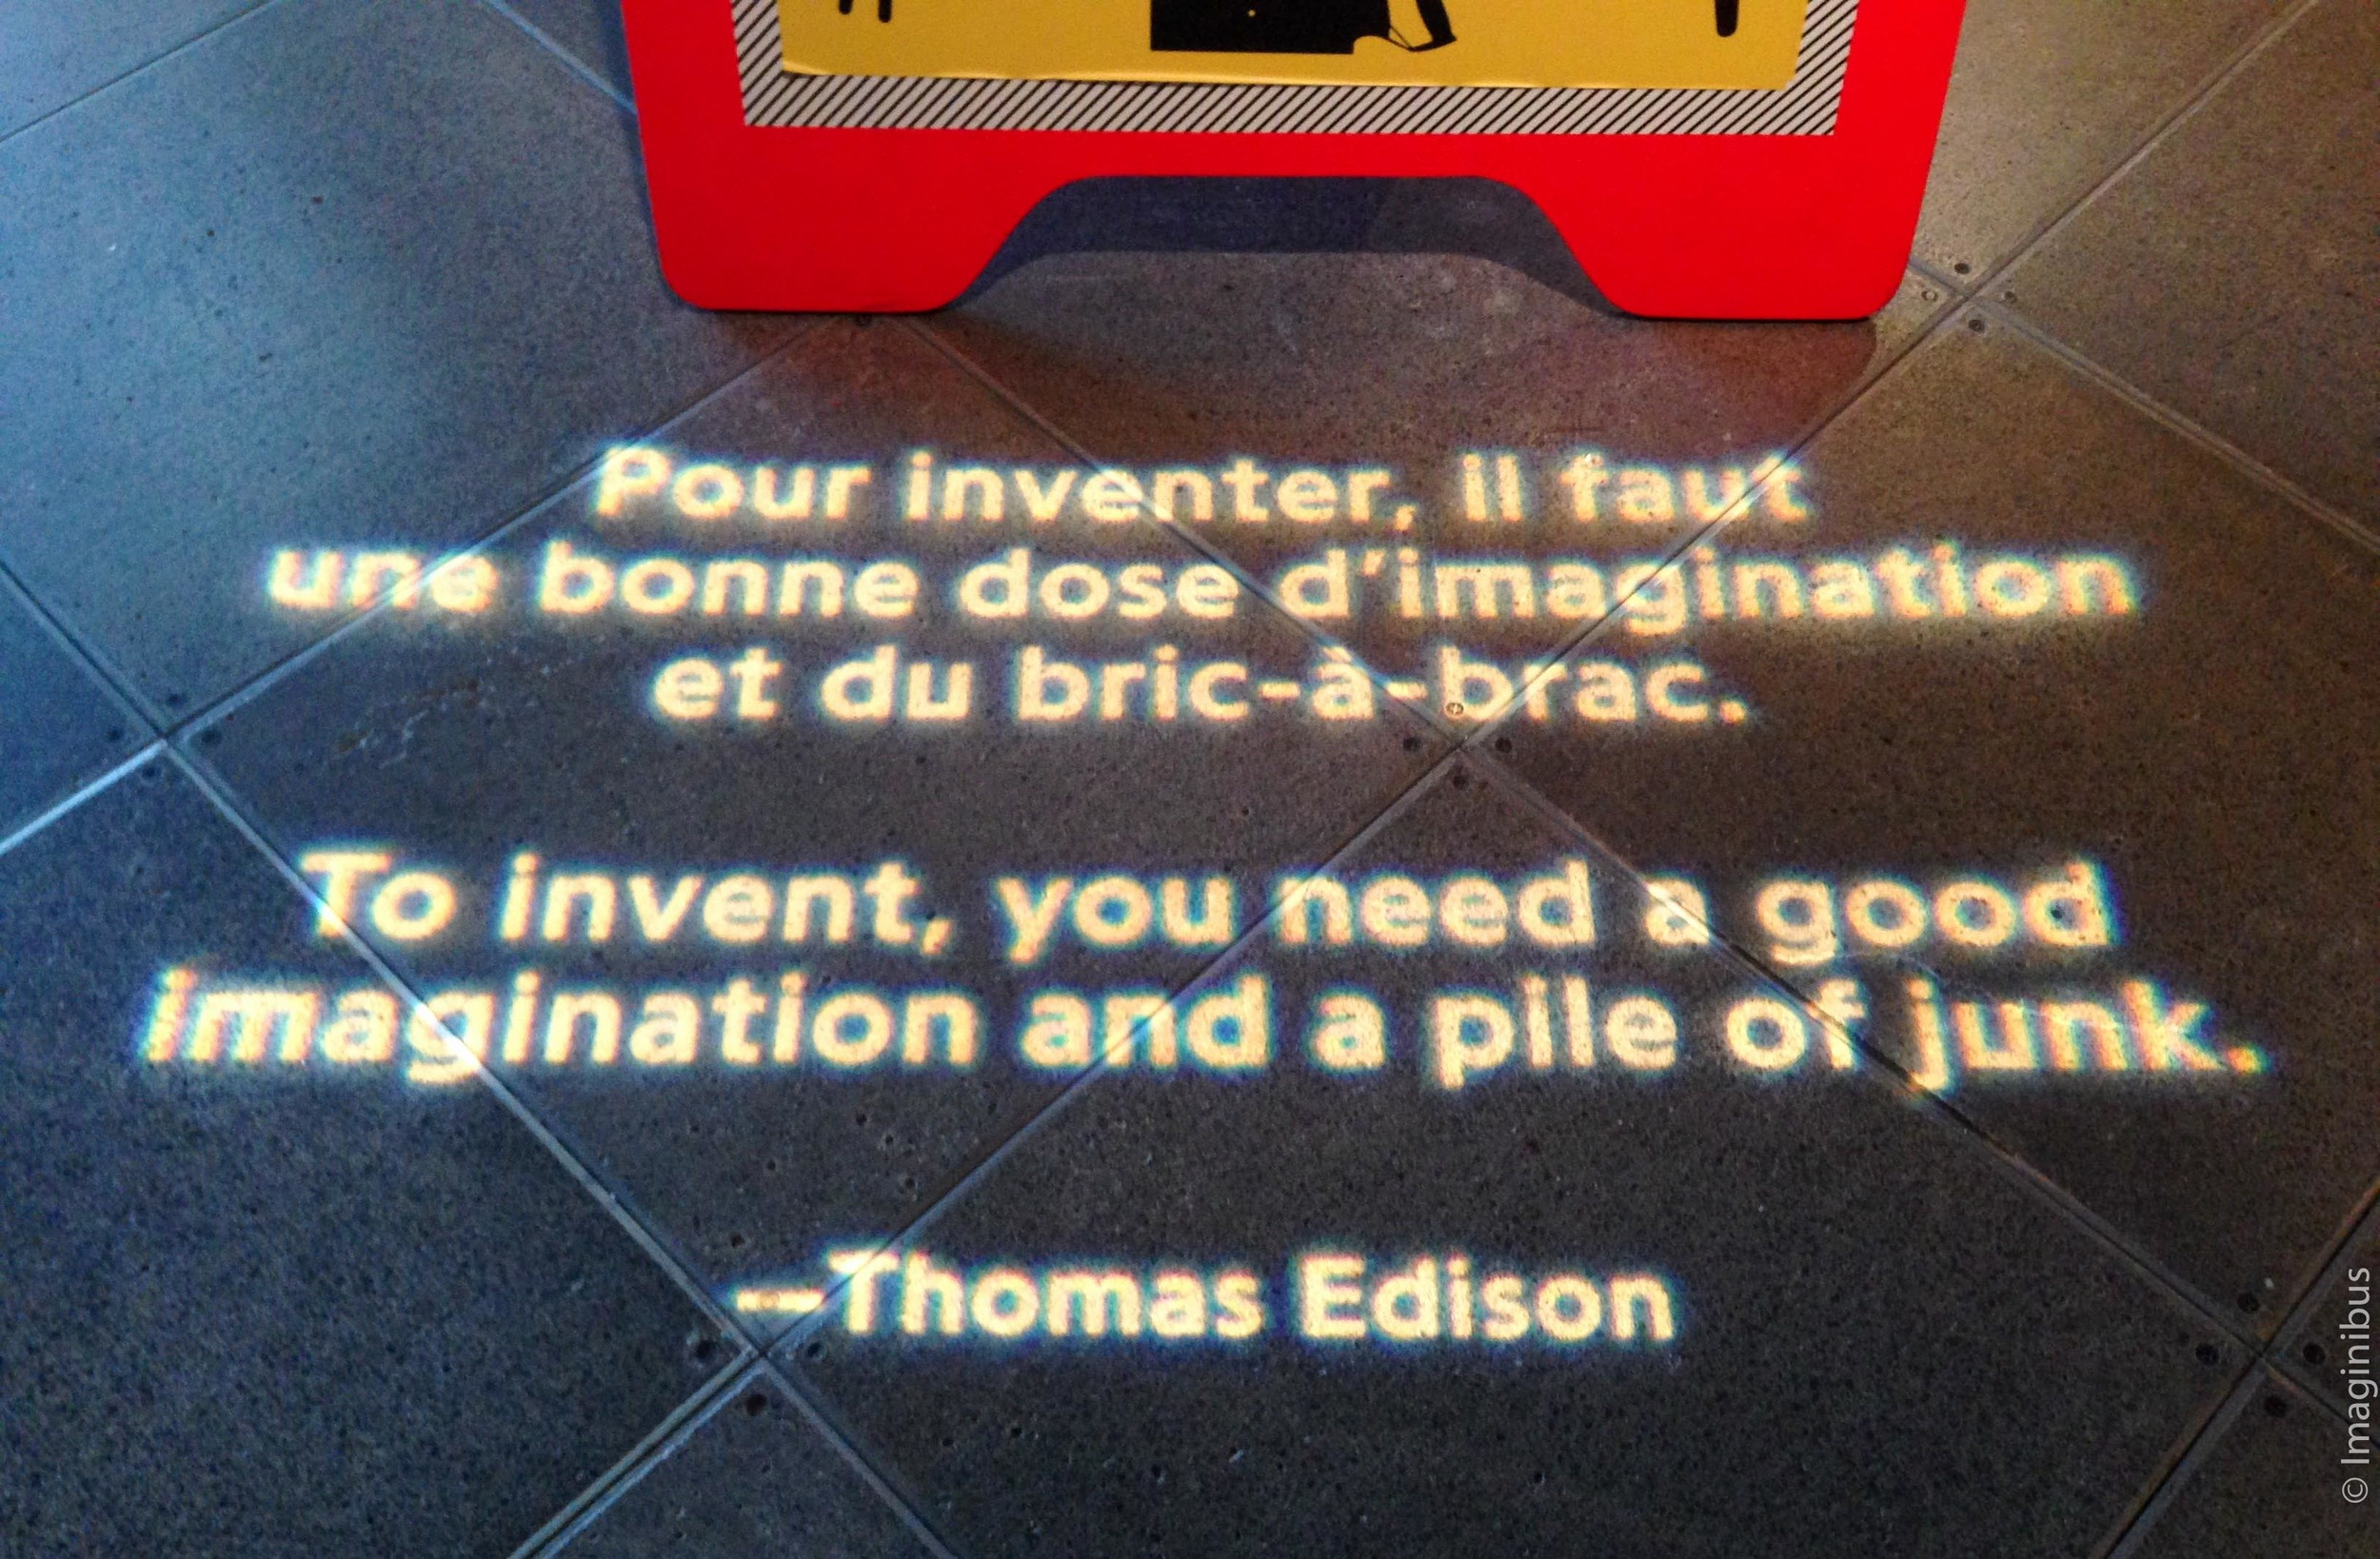 Creativity Factory, Montreal Science Center